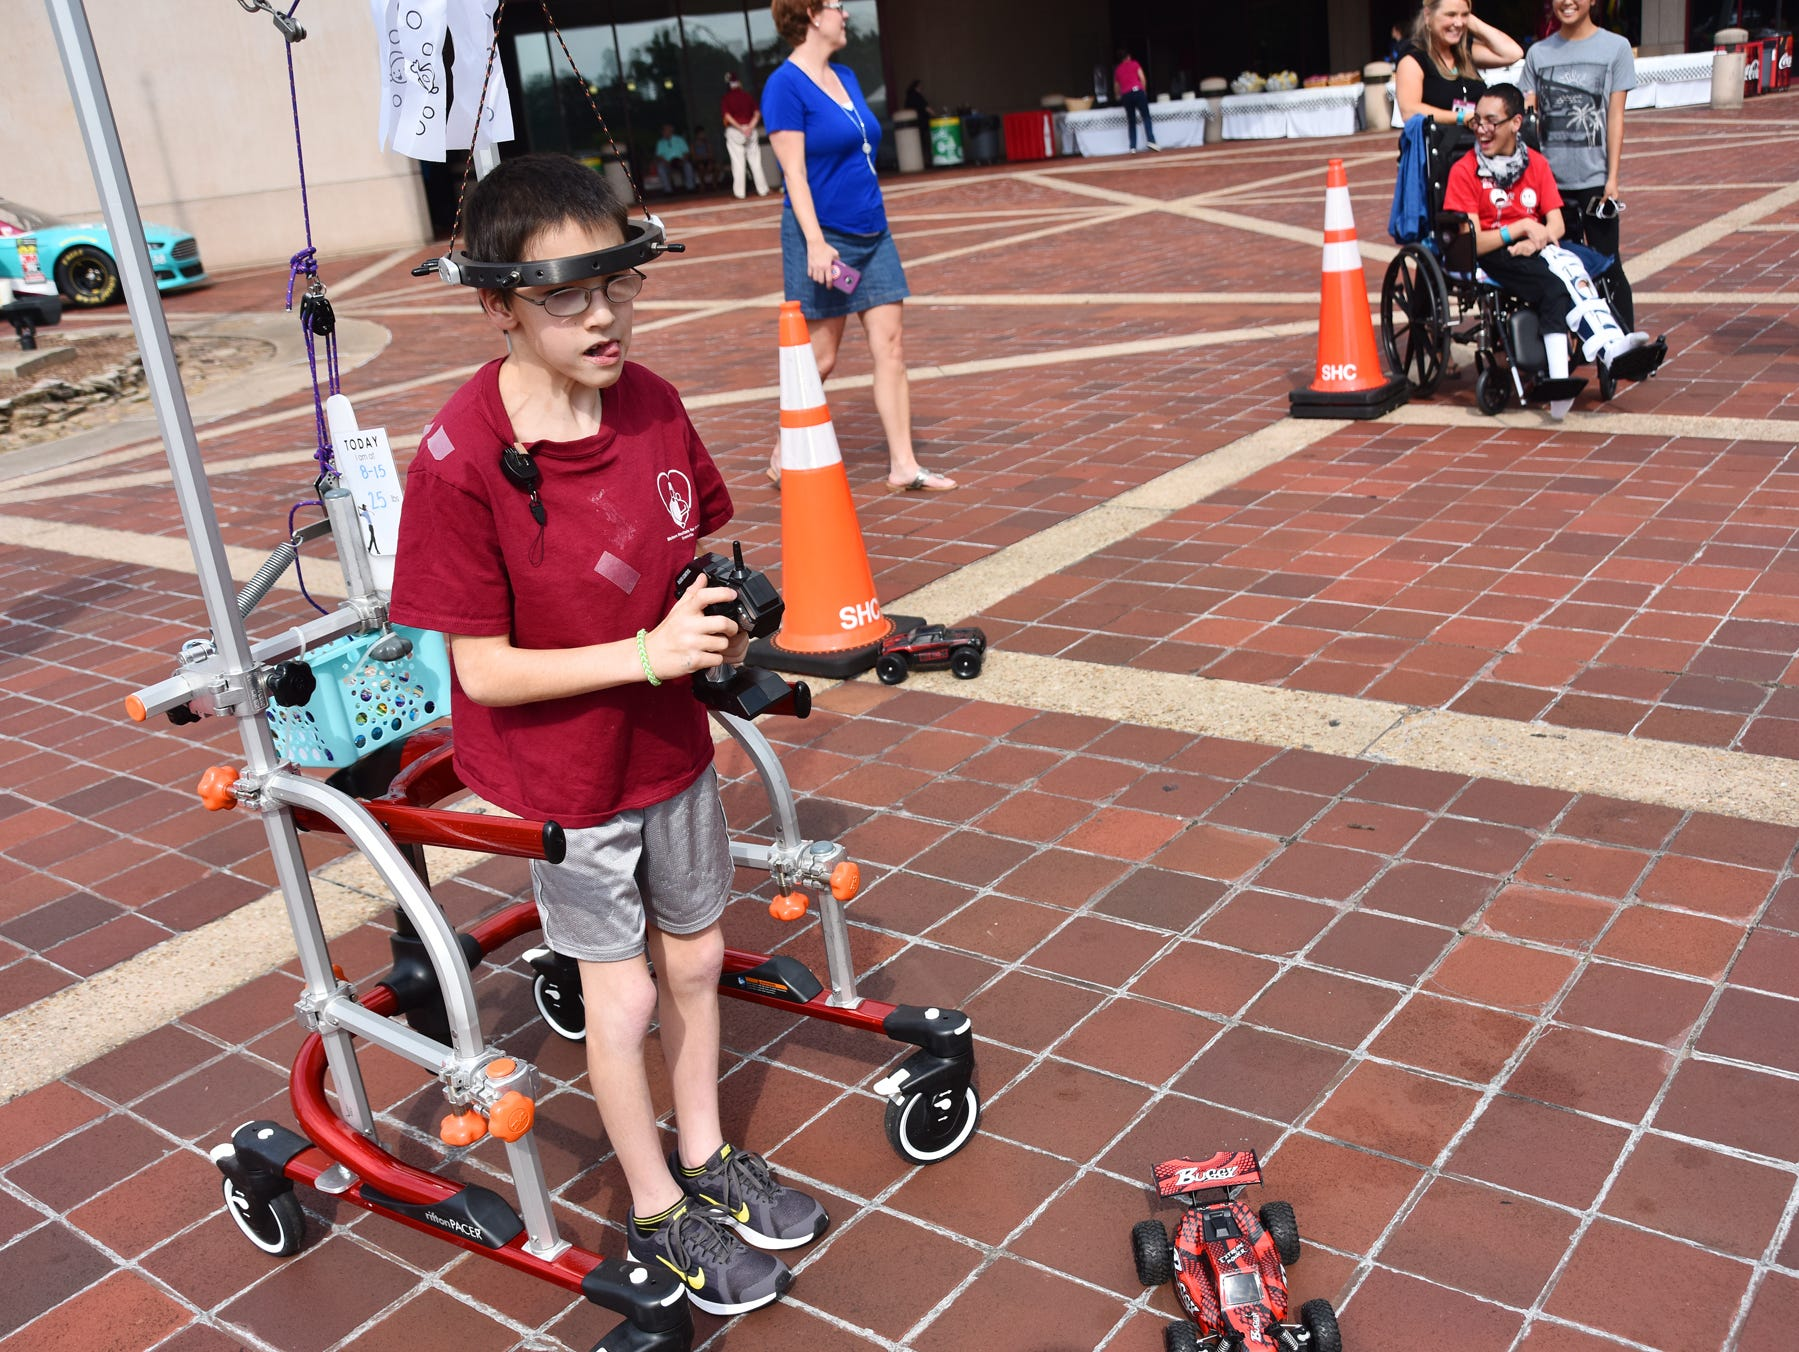 Grayson Lusk, 11, plays with a remote control car at the Shriners Hosptial for Children in Greenville on August 15, 2018.